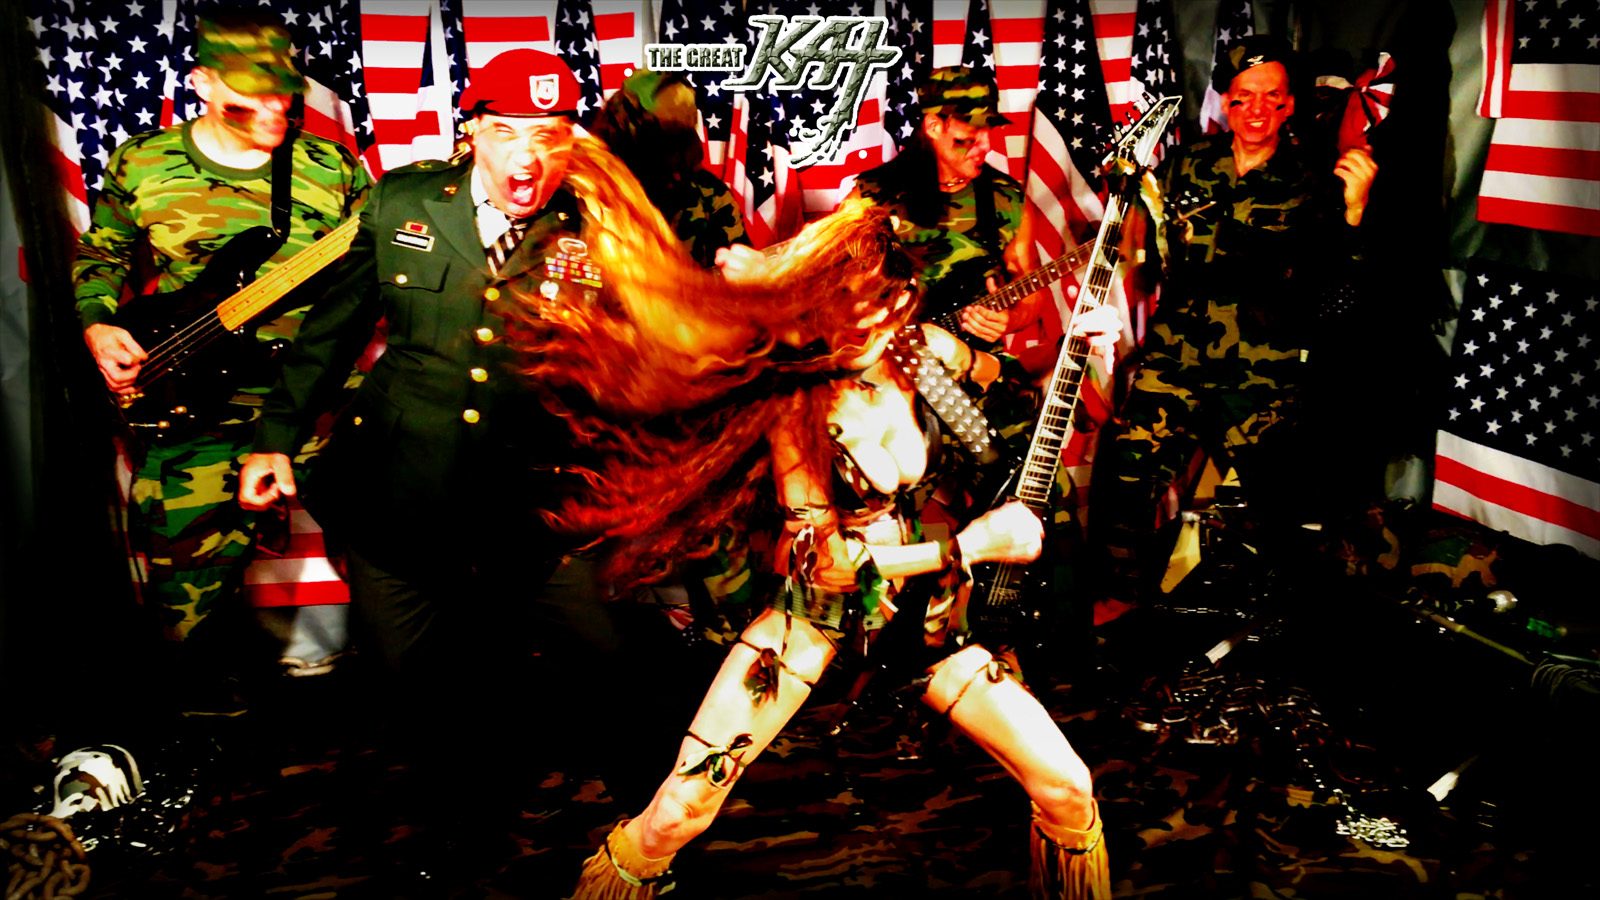 """THE GREAT KAT LEADS HER ALL-MALE ARMY BAND INTO WAR! From The Great Kat's """"TERROR"""" MUSIC VIDEO!!"""